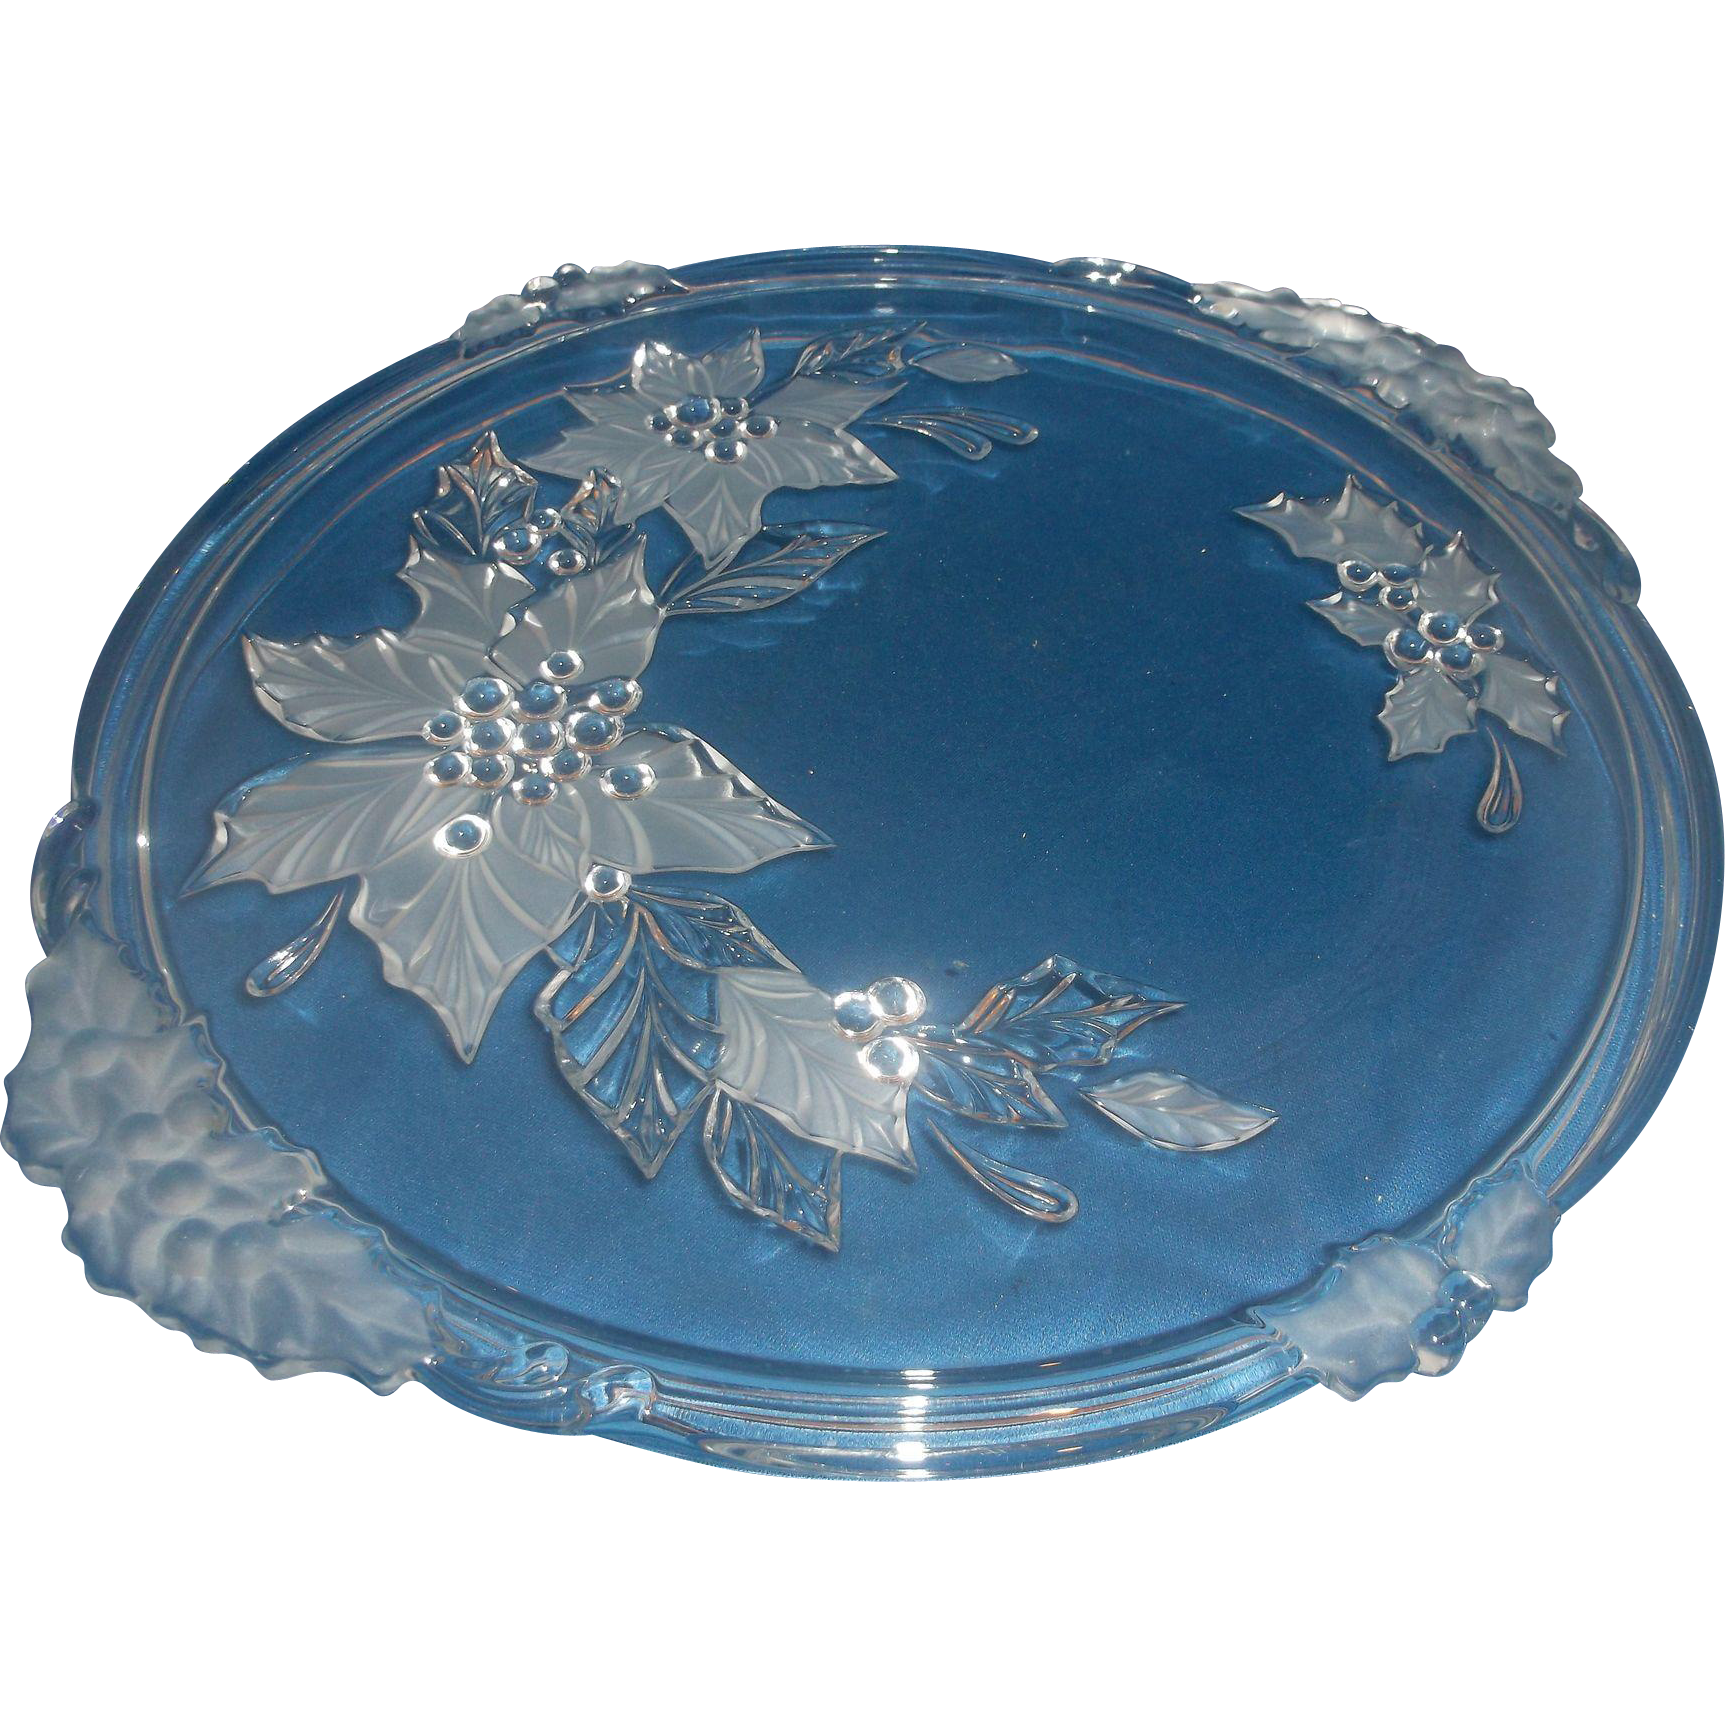 Mikasa Poinsettia Crystal Cake Plate Handles Frosted Flowers